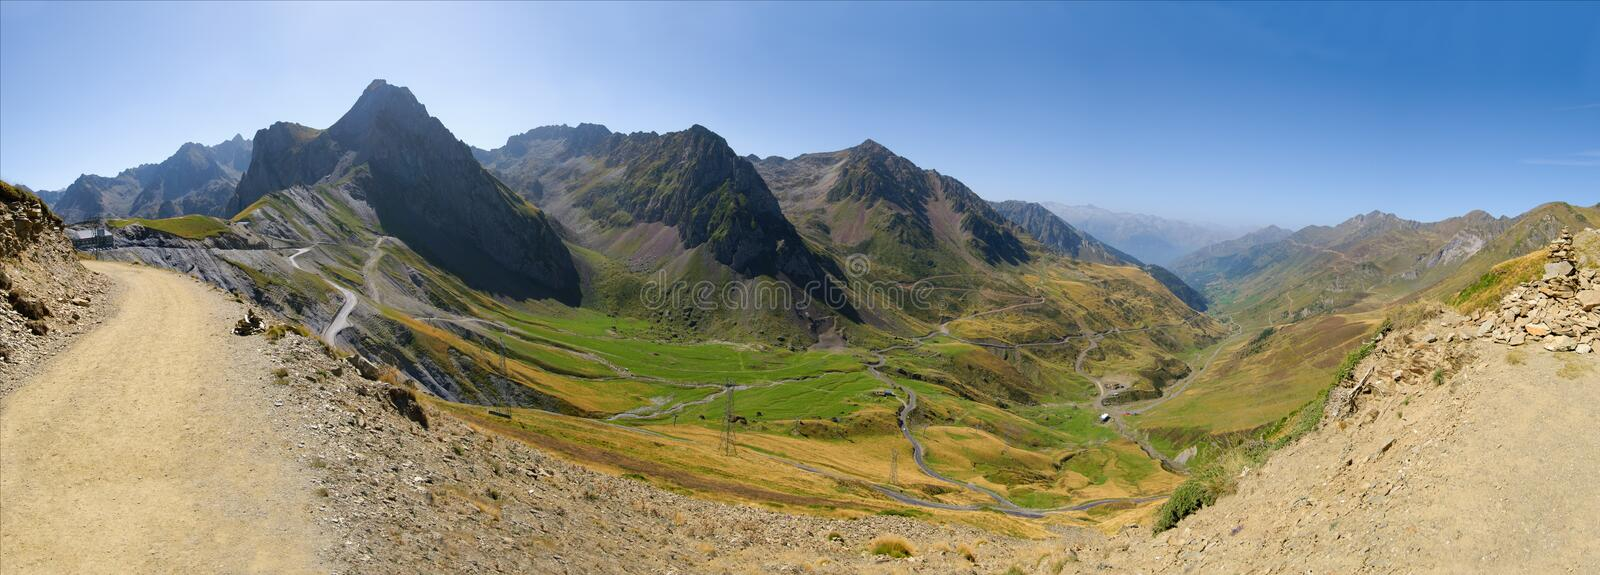 Download 53 Mpx Mountain Panorama, Col Du Tourmalet Stock Image - Image: 7994299